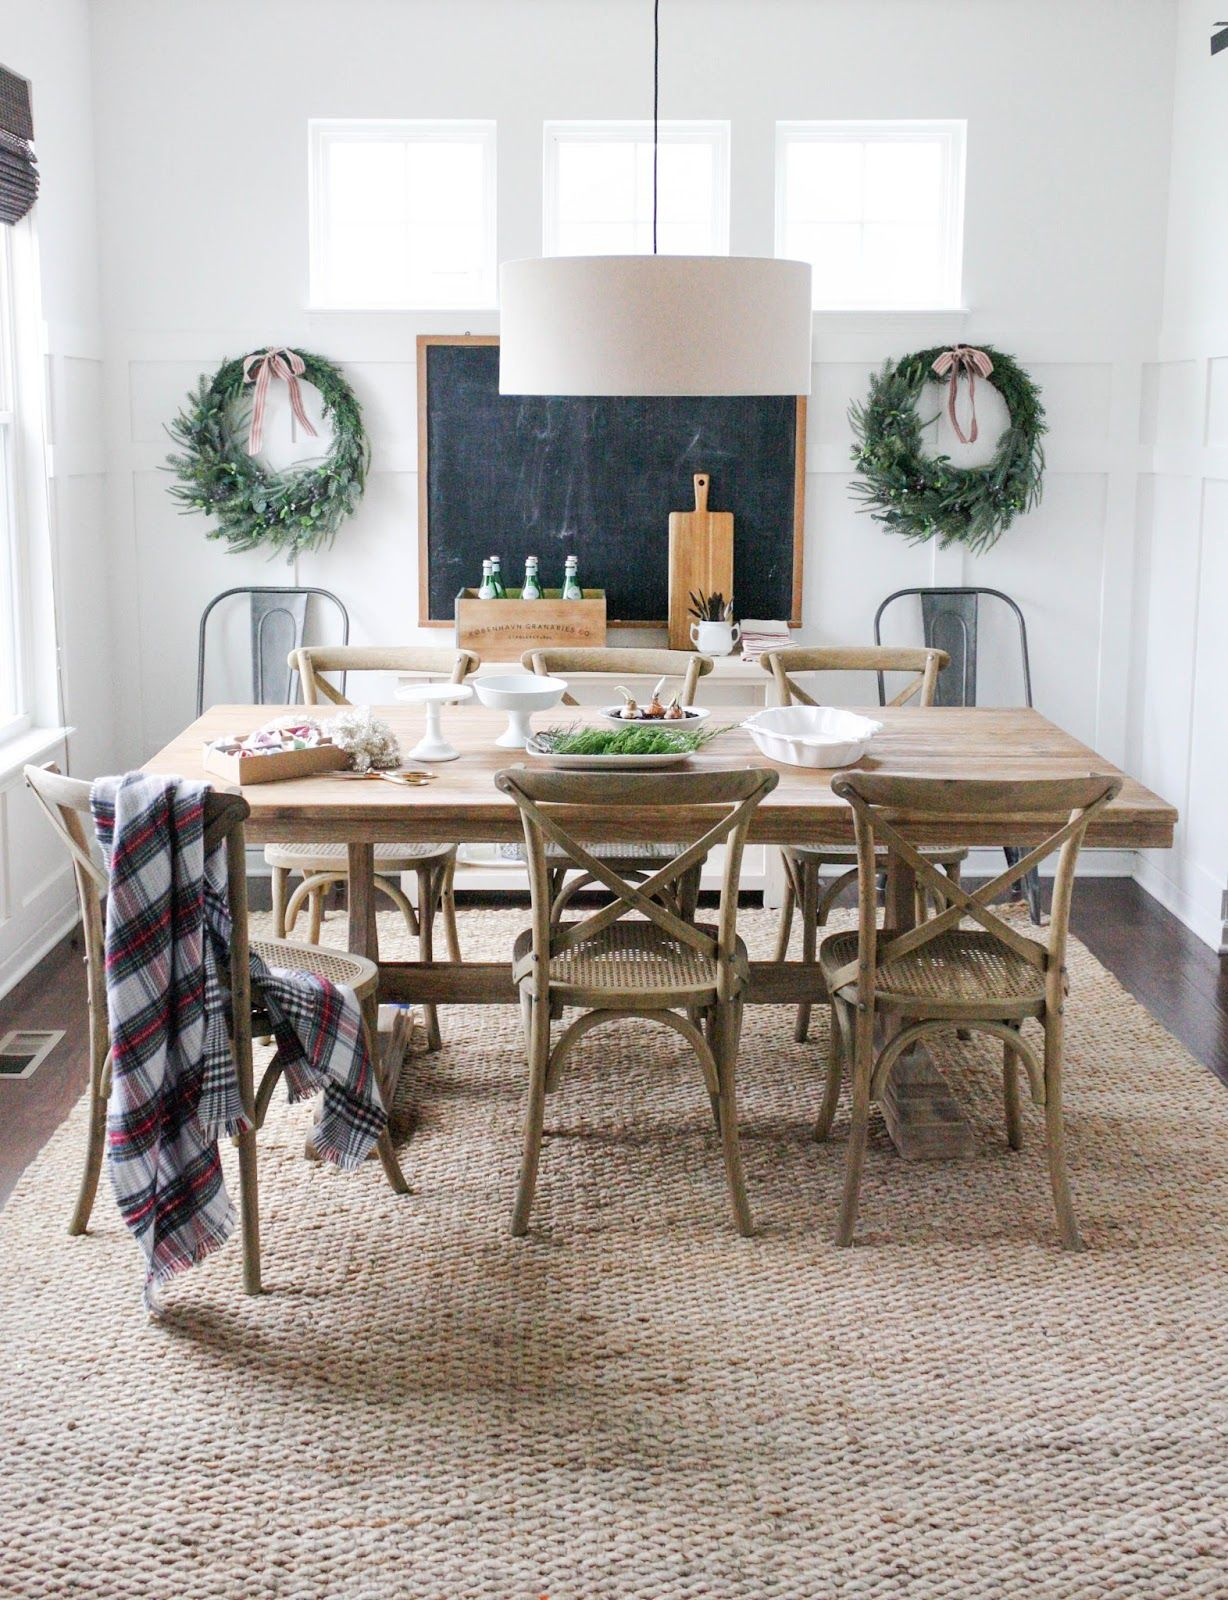 jute rug from rugs usa dining table from world market chairs from restoration hardware. Black Bedroom Furniture Sets. Home Design Ideas